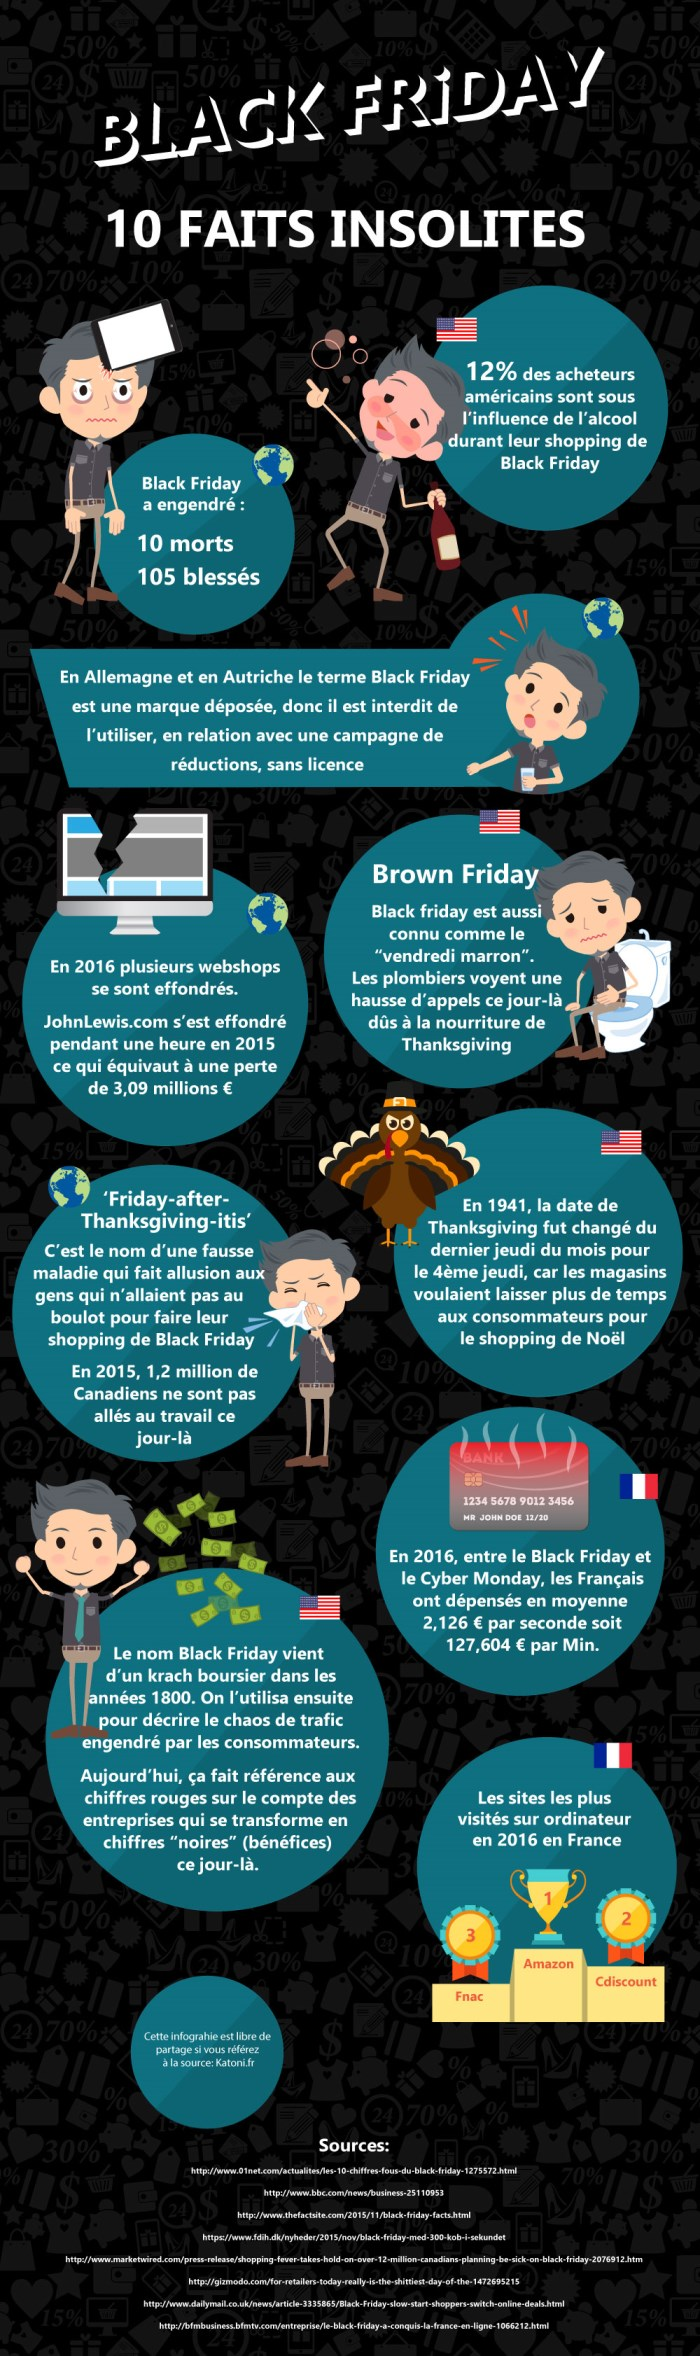 black friday : 10 faits insolites